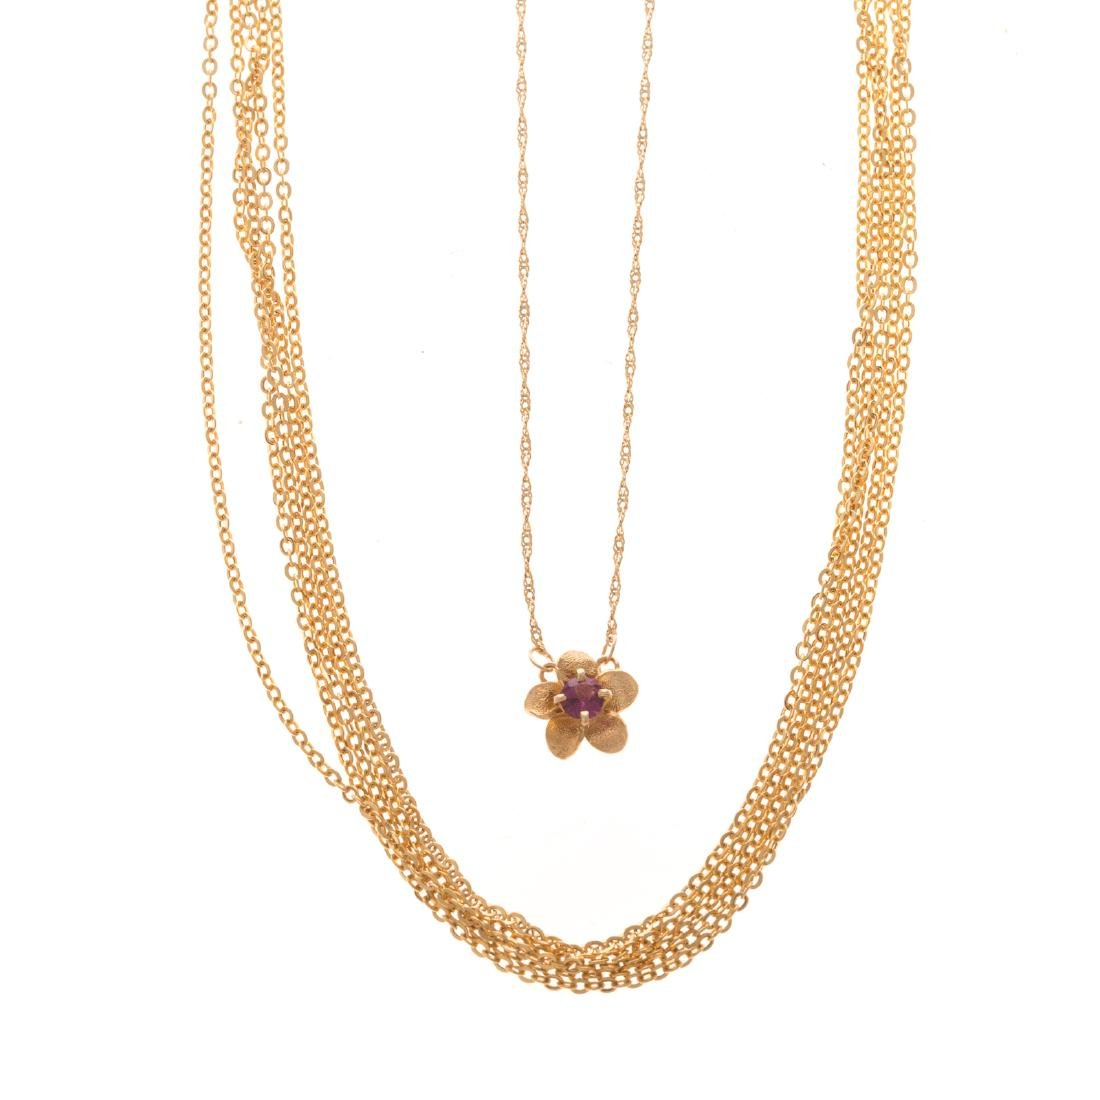 Two Lady's Necklaces in 14K Gold